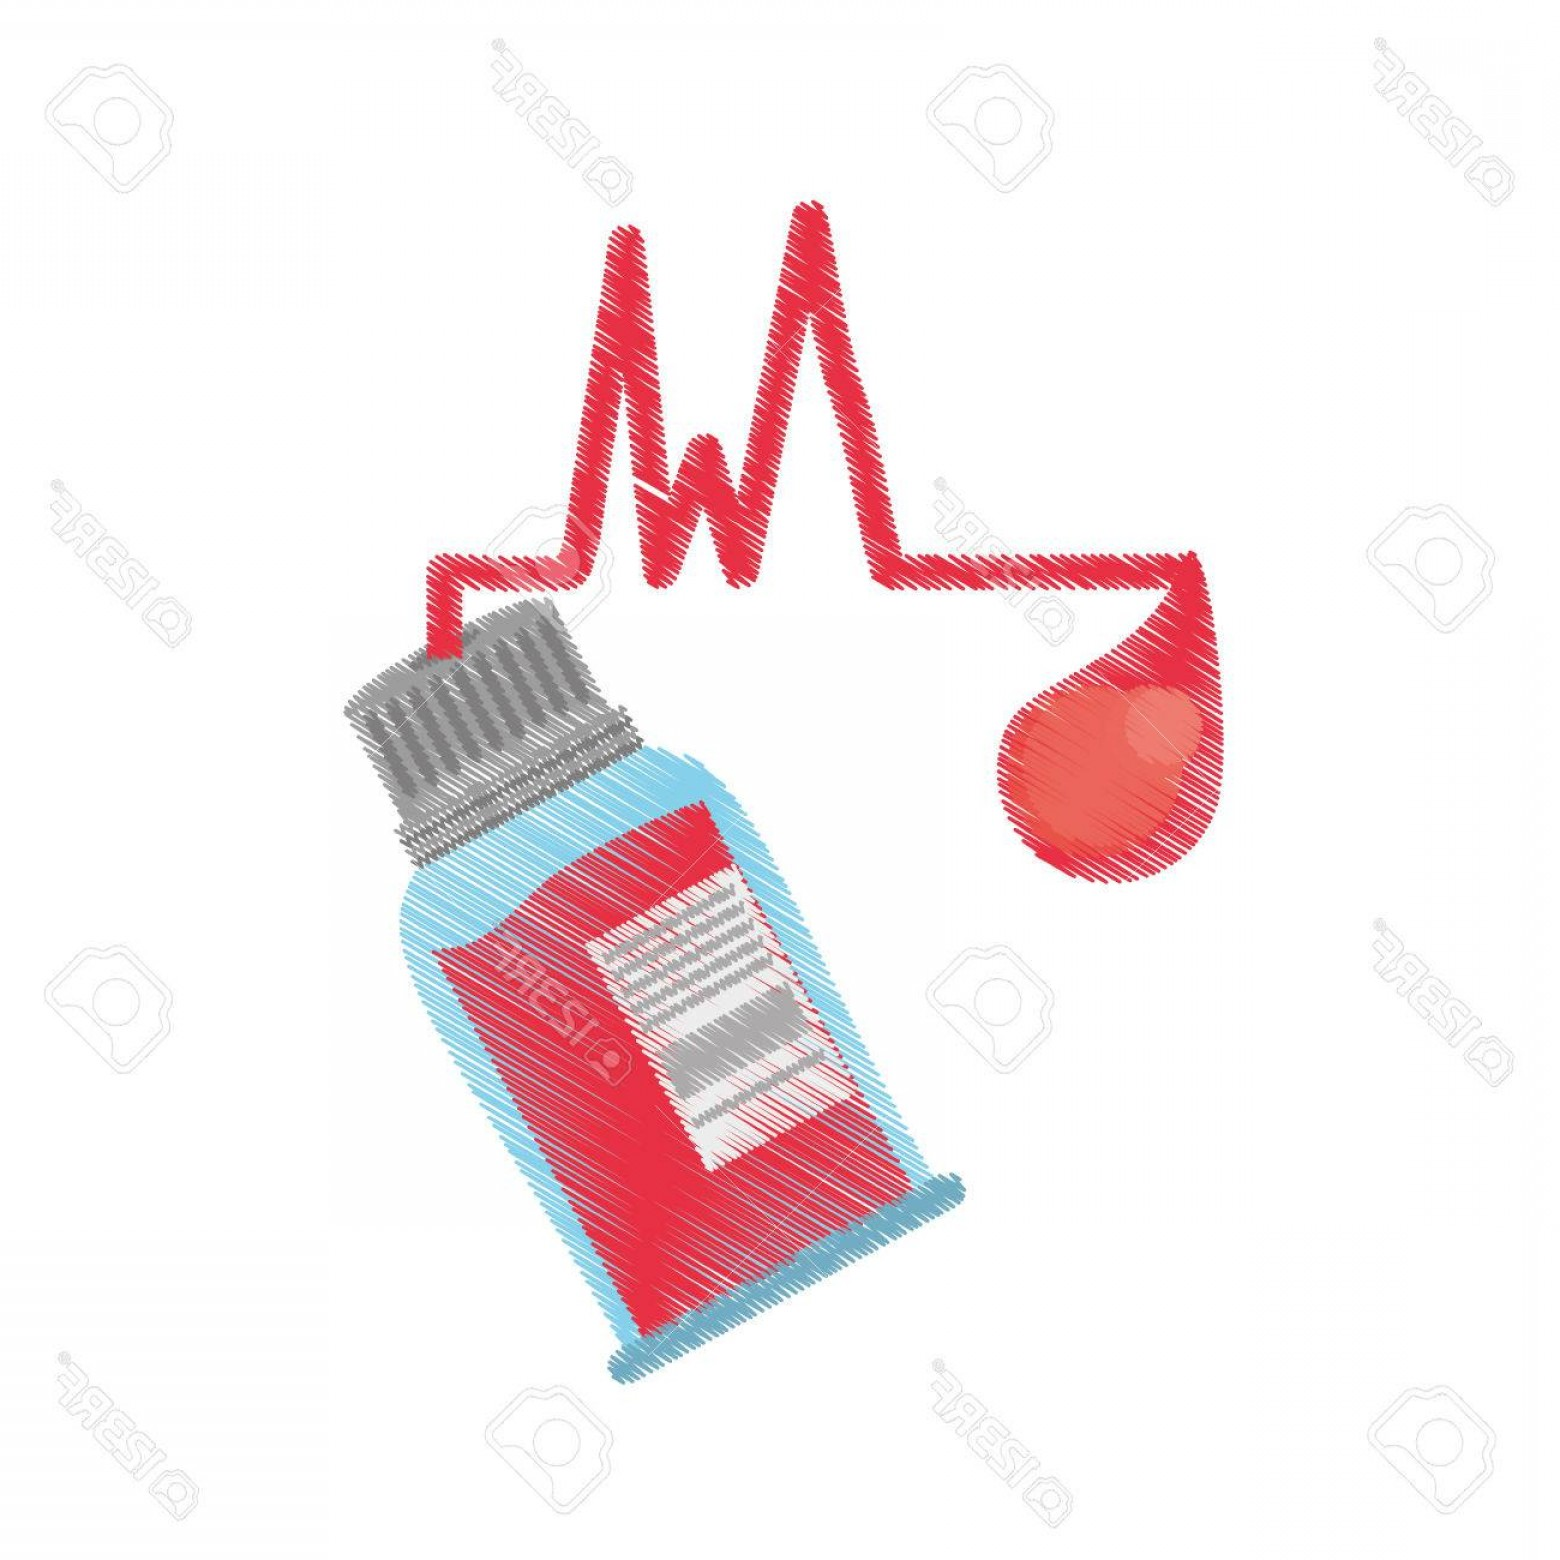 Charity Meter Vector: Photostock Vector Drawing Bottle Blood Sample Donation Day Vector Illustration Eps